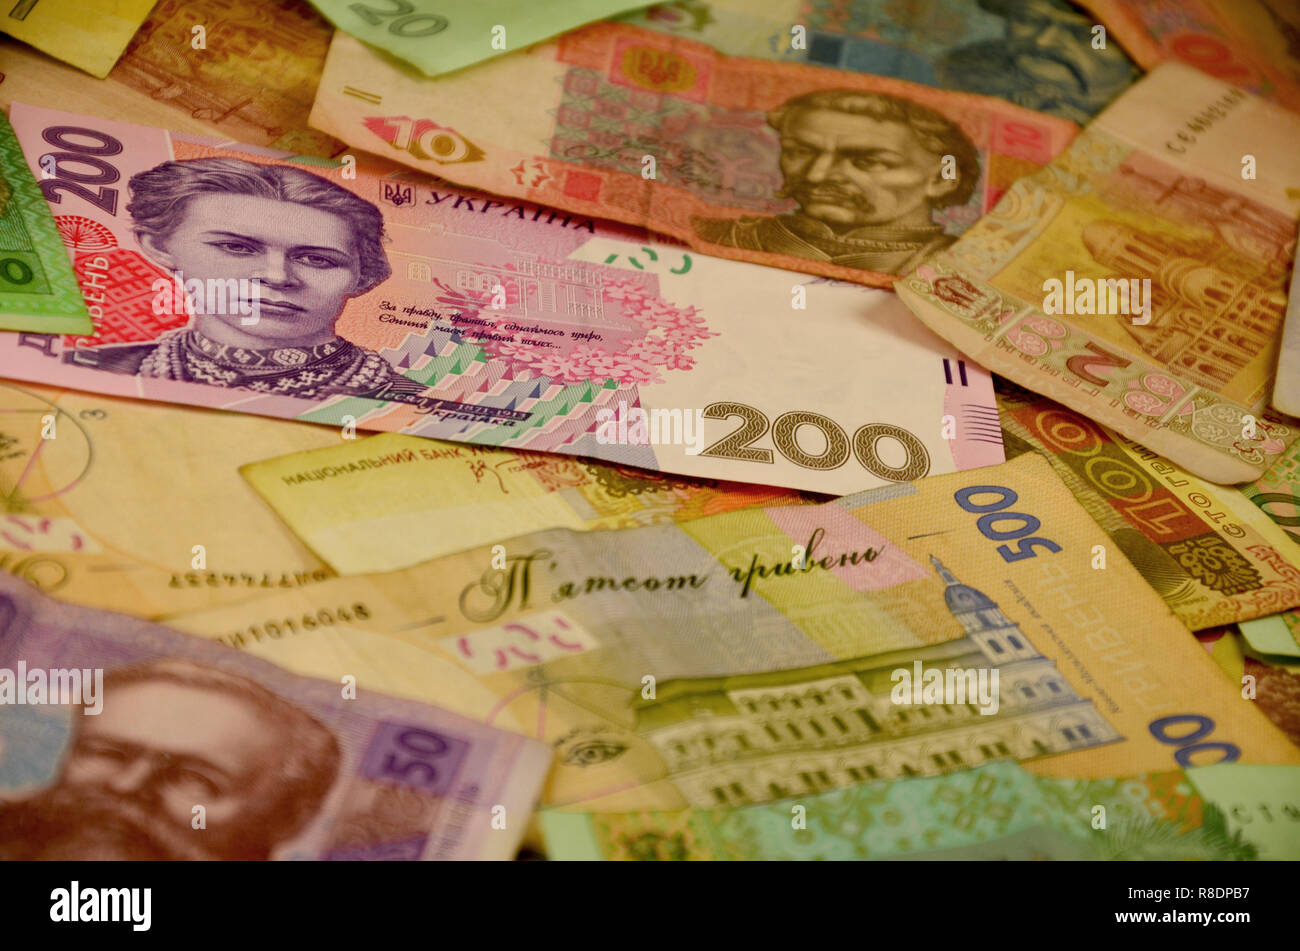 Background image of many Ukrainian banknotes of different colors and size. Conceptual image for the Ukrainian banking operations, withdraw funds, weal - Stock Image